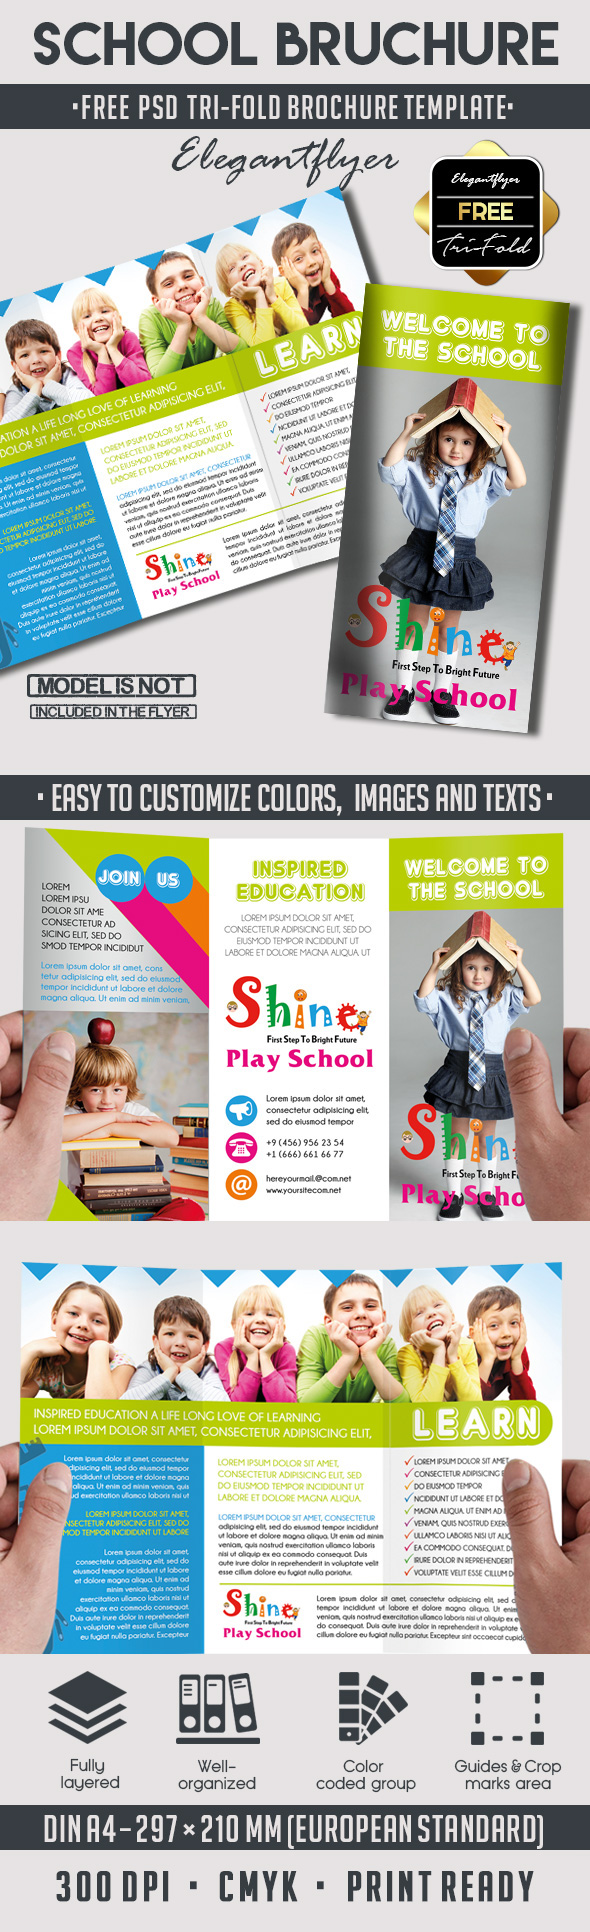 School Free PSD TriFold PSD Brochure Template On Behance - School brochures templates